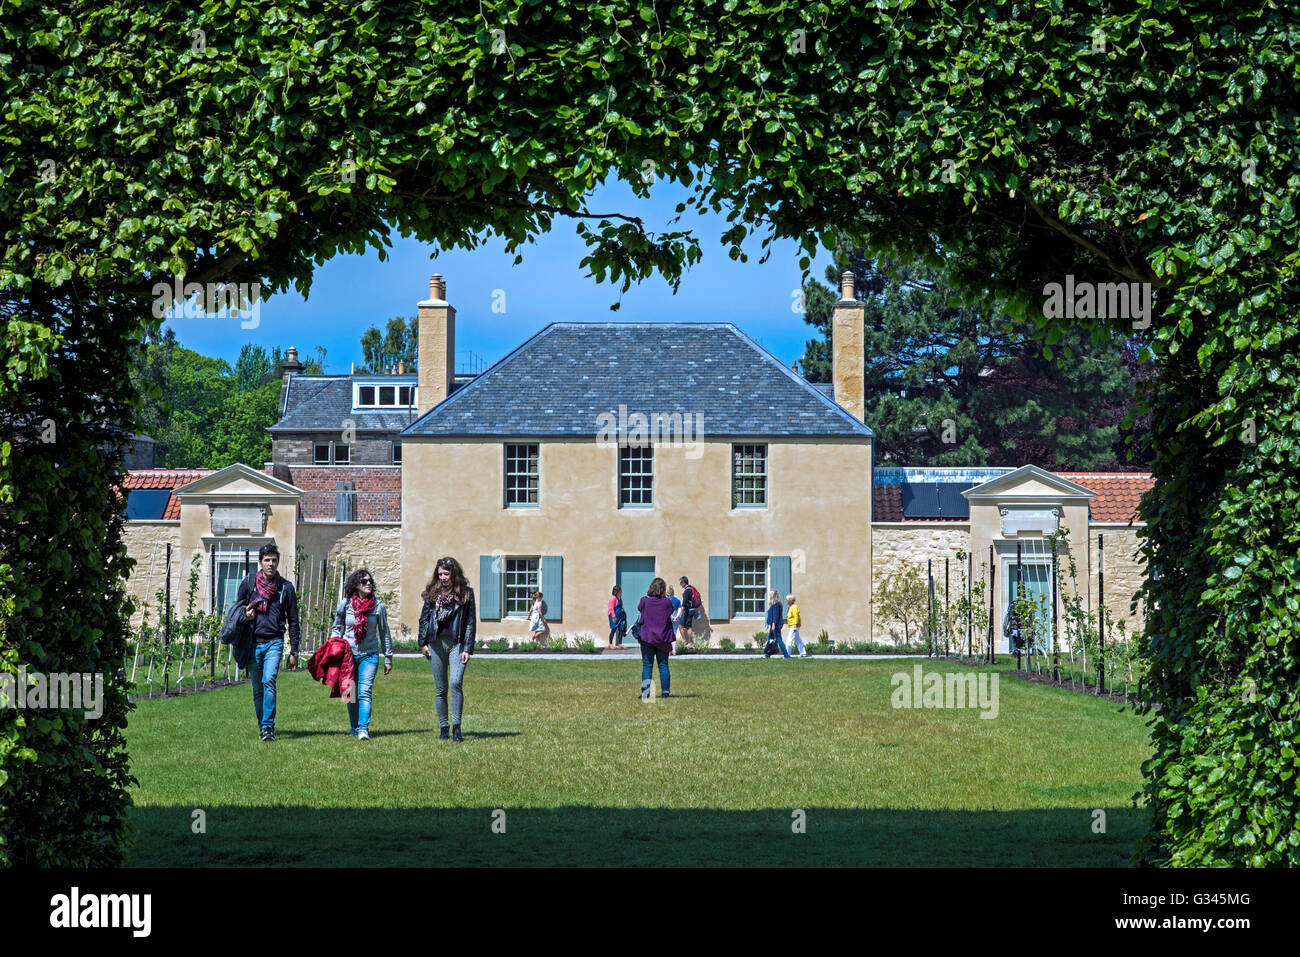 The view through the beech hedge looking towards the newly restored Botanic Cottage in the Botanic Gardens in Edinburgh. - Stock Image